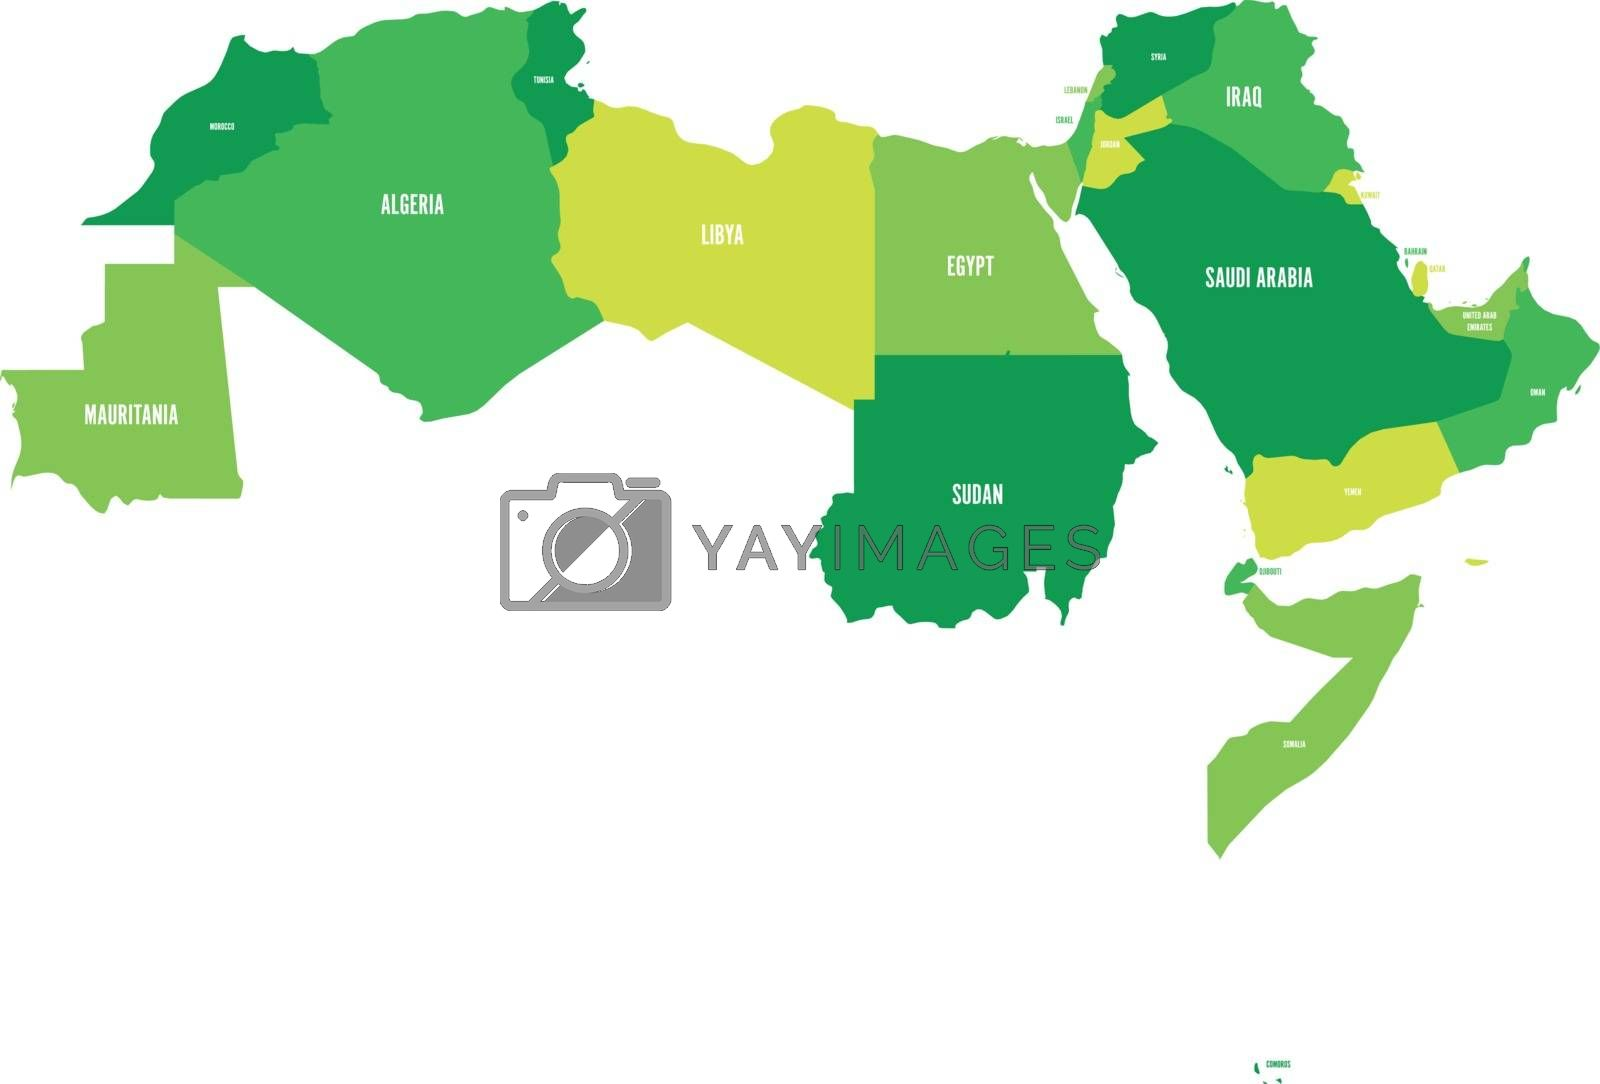 Picture of: Arab World States Political Map Of 22 Arabic Speaking Countries Of The Arab League Northern Africa And Middle East Region Vector Illustration Royalty Free Stock Image Stock Photos Royalty Free Images Vectors